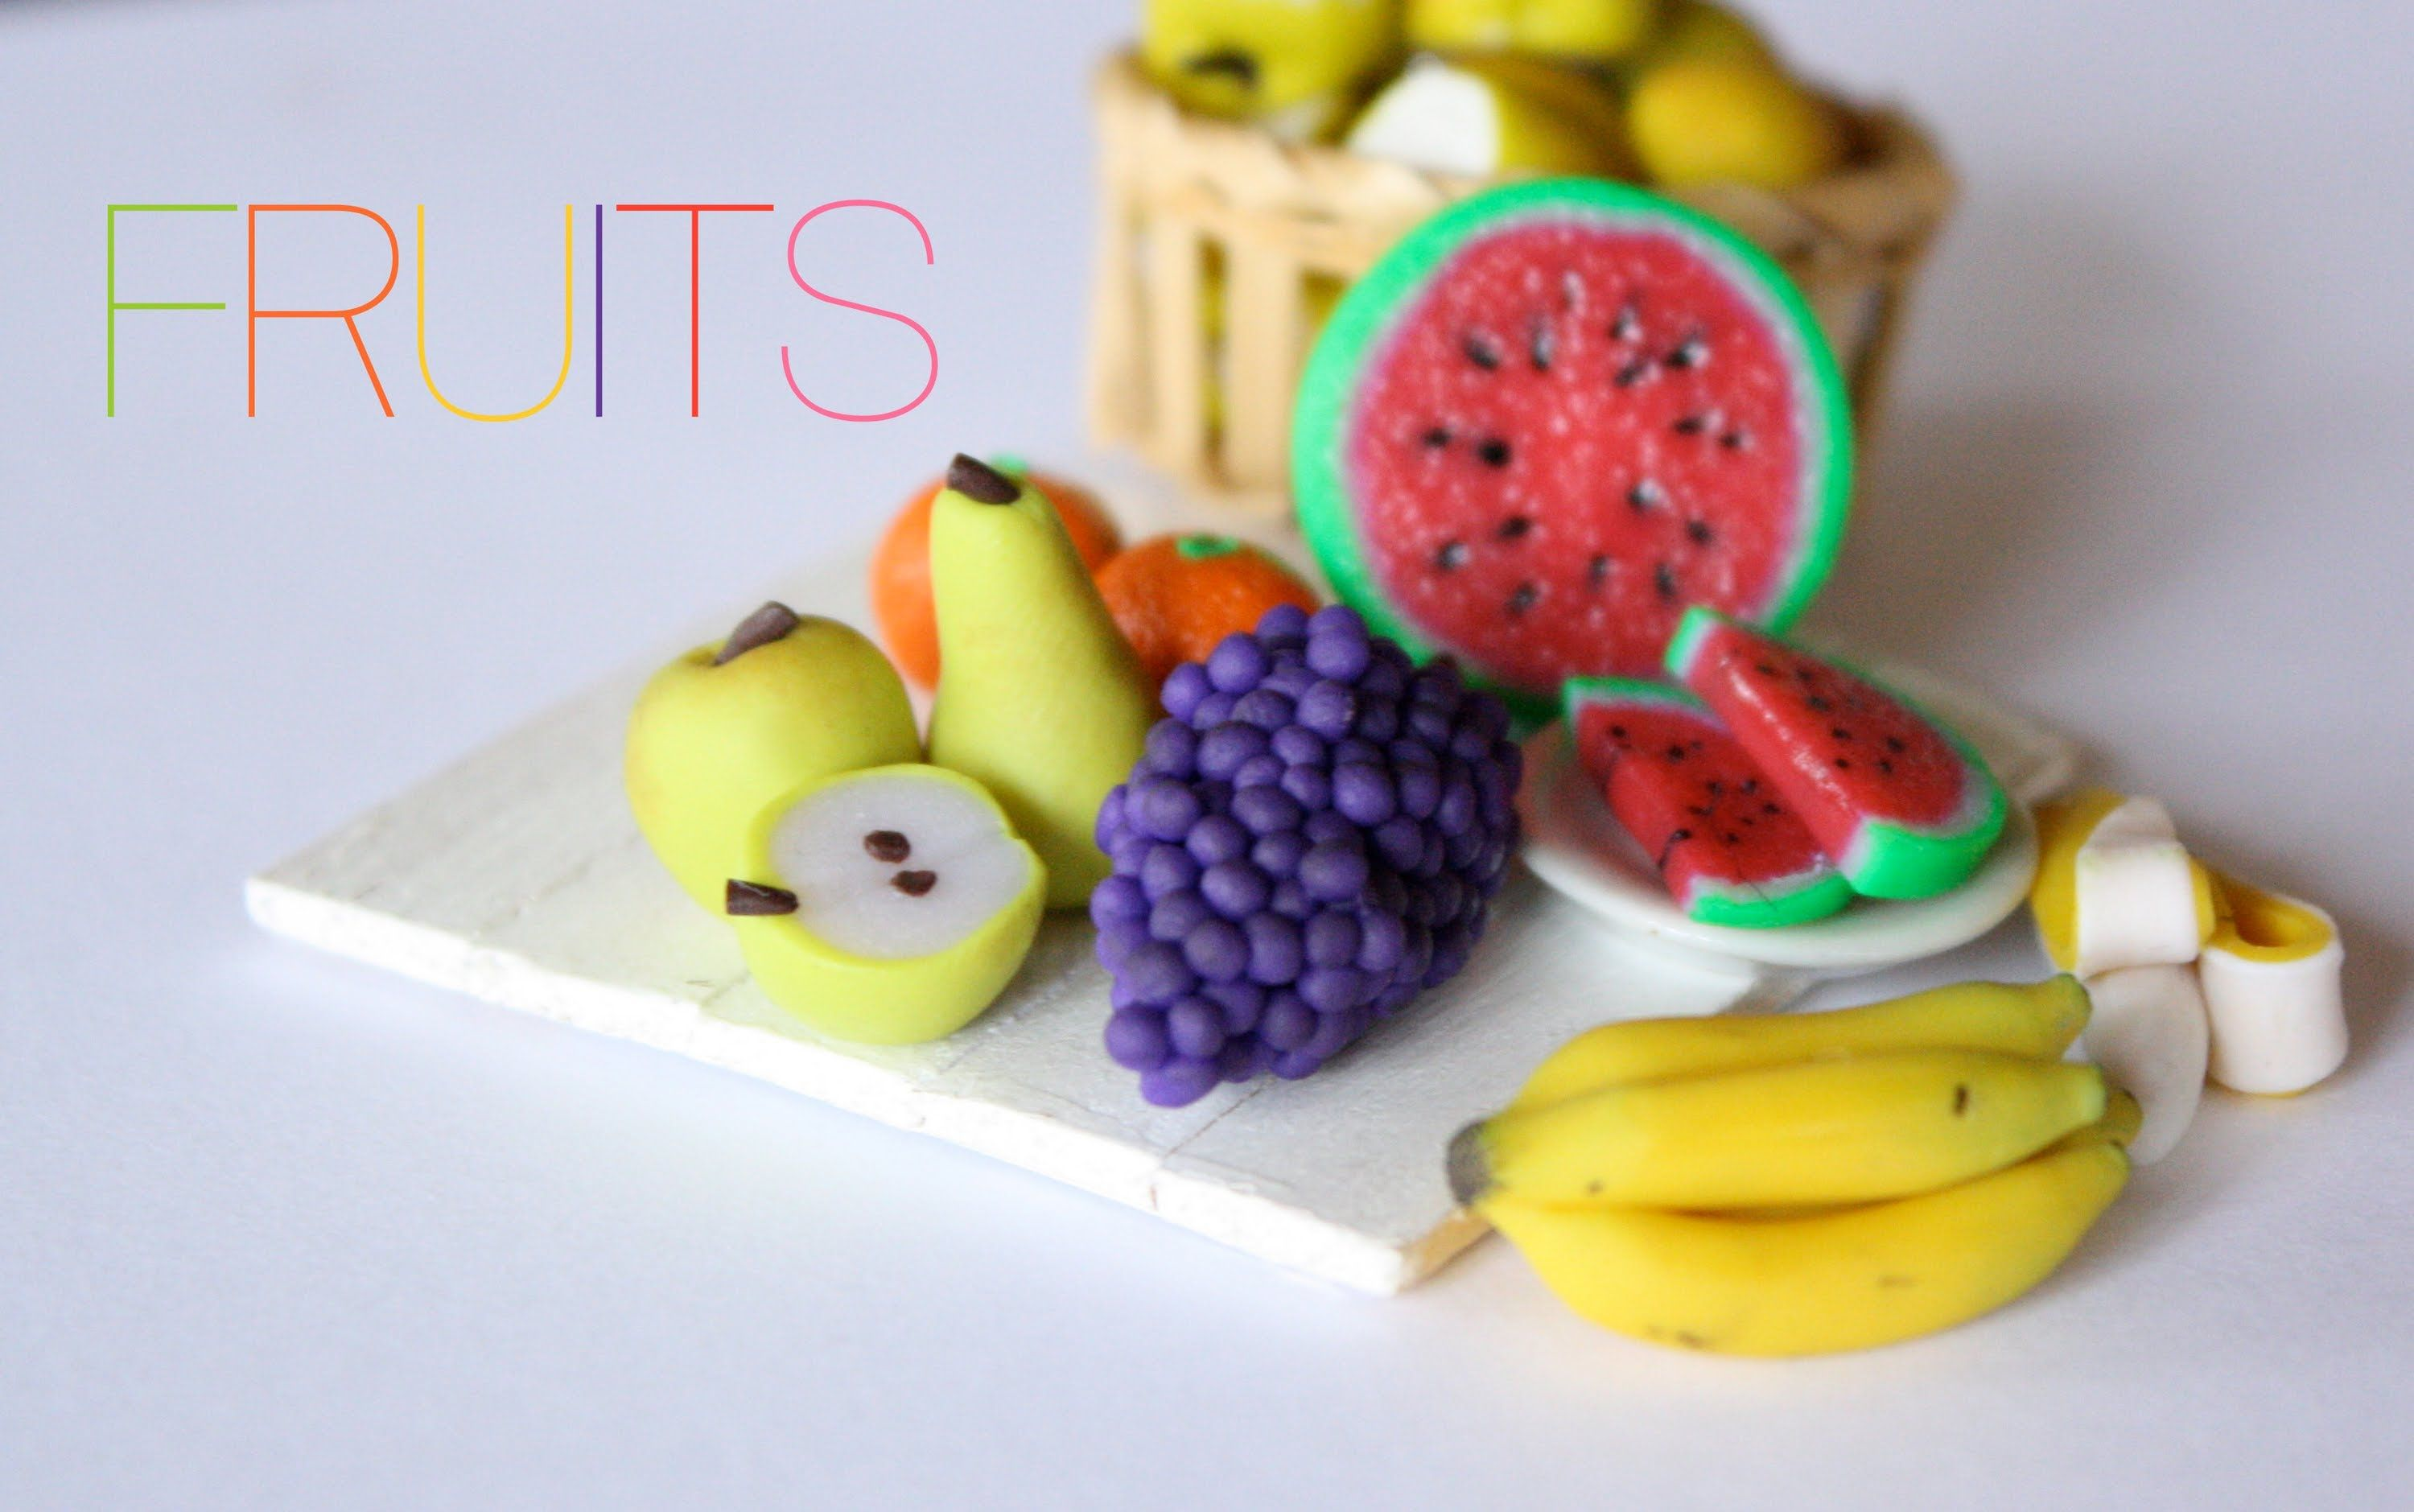 Fruit Bananas Watermelon Apples Pears Oranges & Grapes in